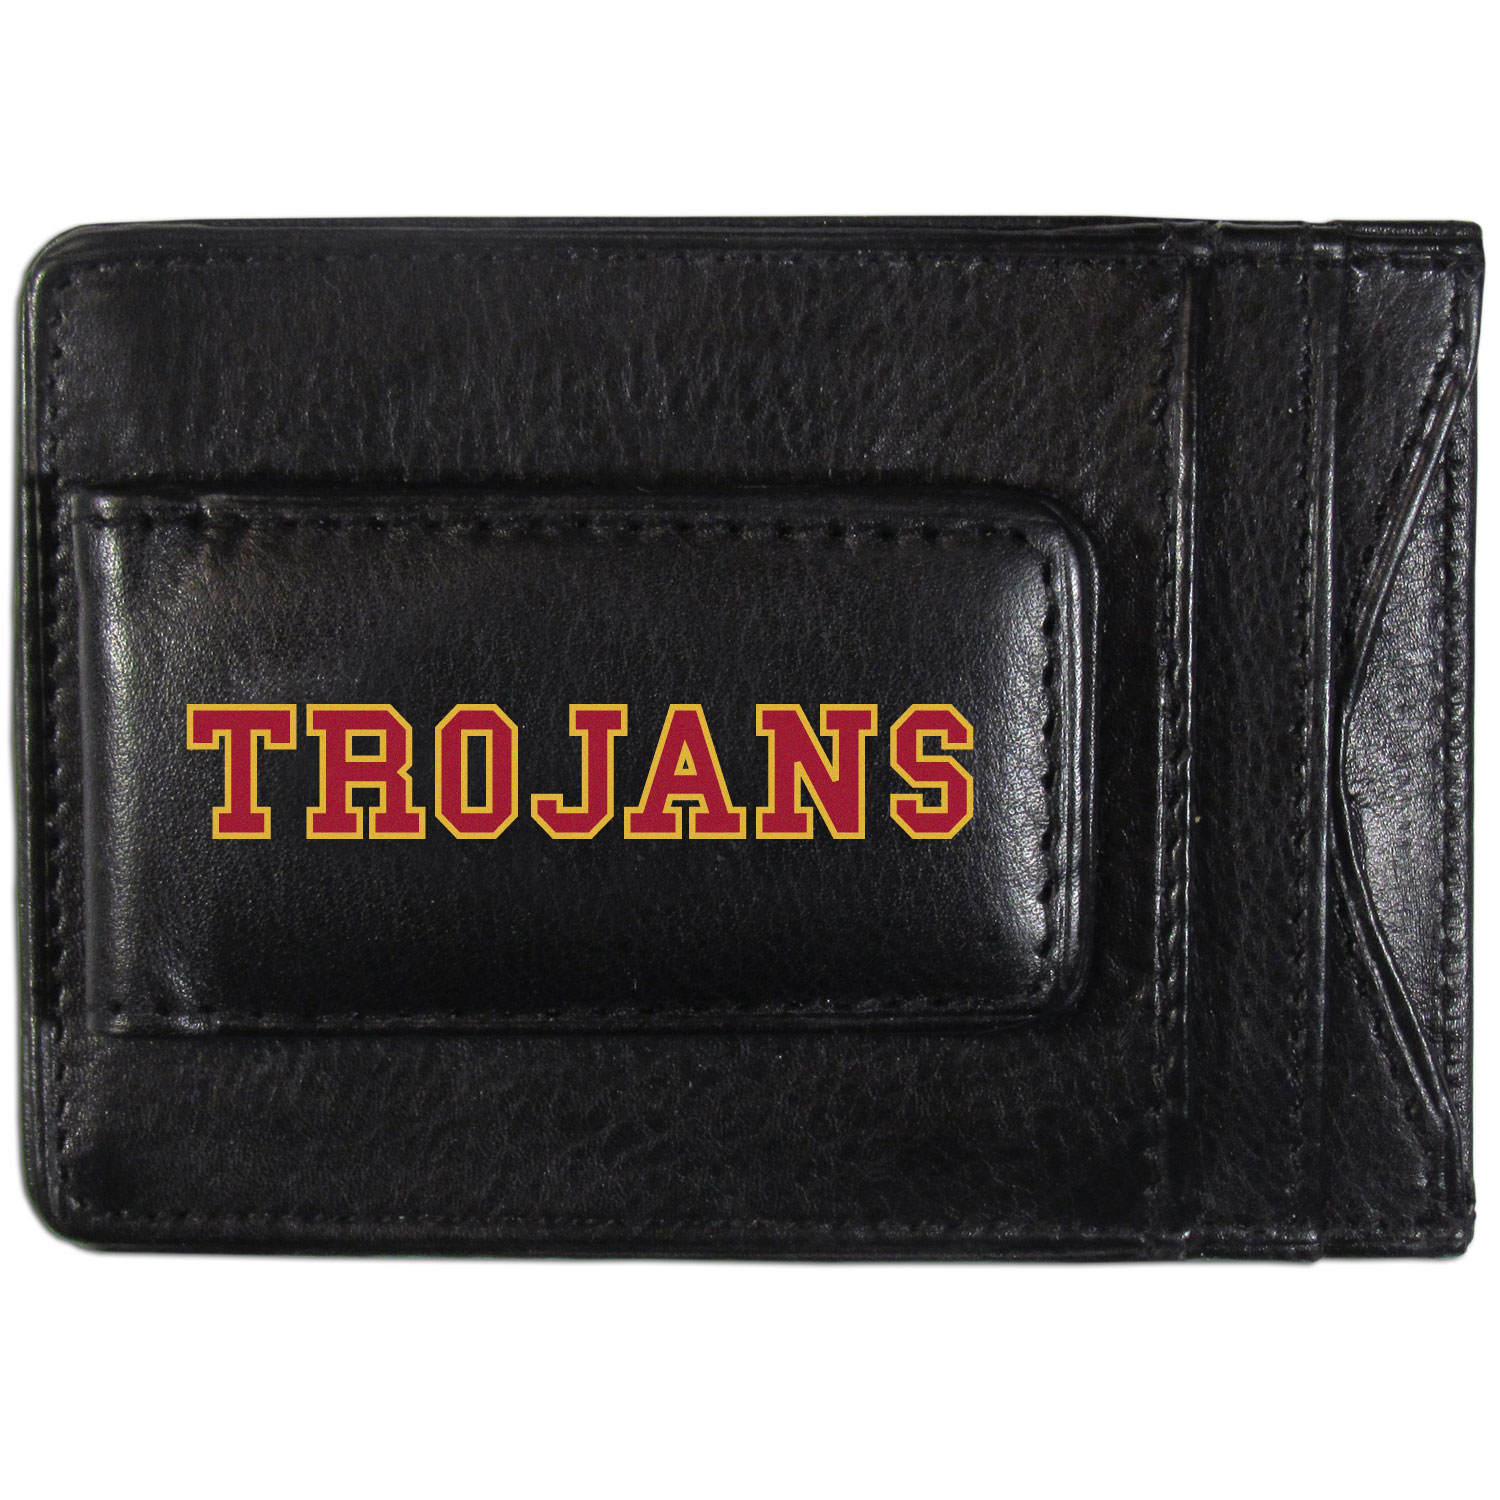 USC Trojans Logo Leather Cash and Cardholder - This super slim leather wallet lets you have all the benefits of a money clip while keeping the organization of a wallet. On one side of this front pocket wallet there is a strong, magnetic money clip to keep your cash easily accessible and the?USC Trojans team logo on the front. The versatile men's accessory is a perfect addition to your fan apparel.